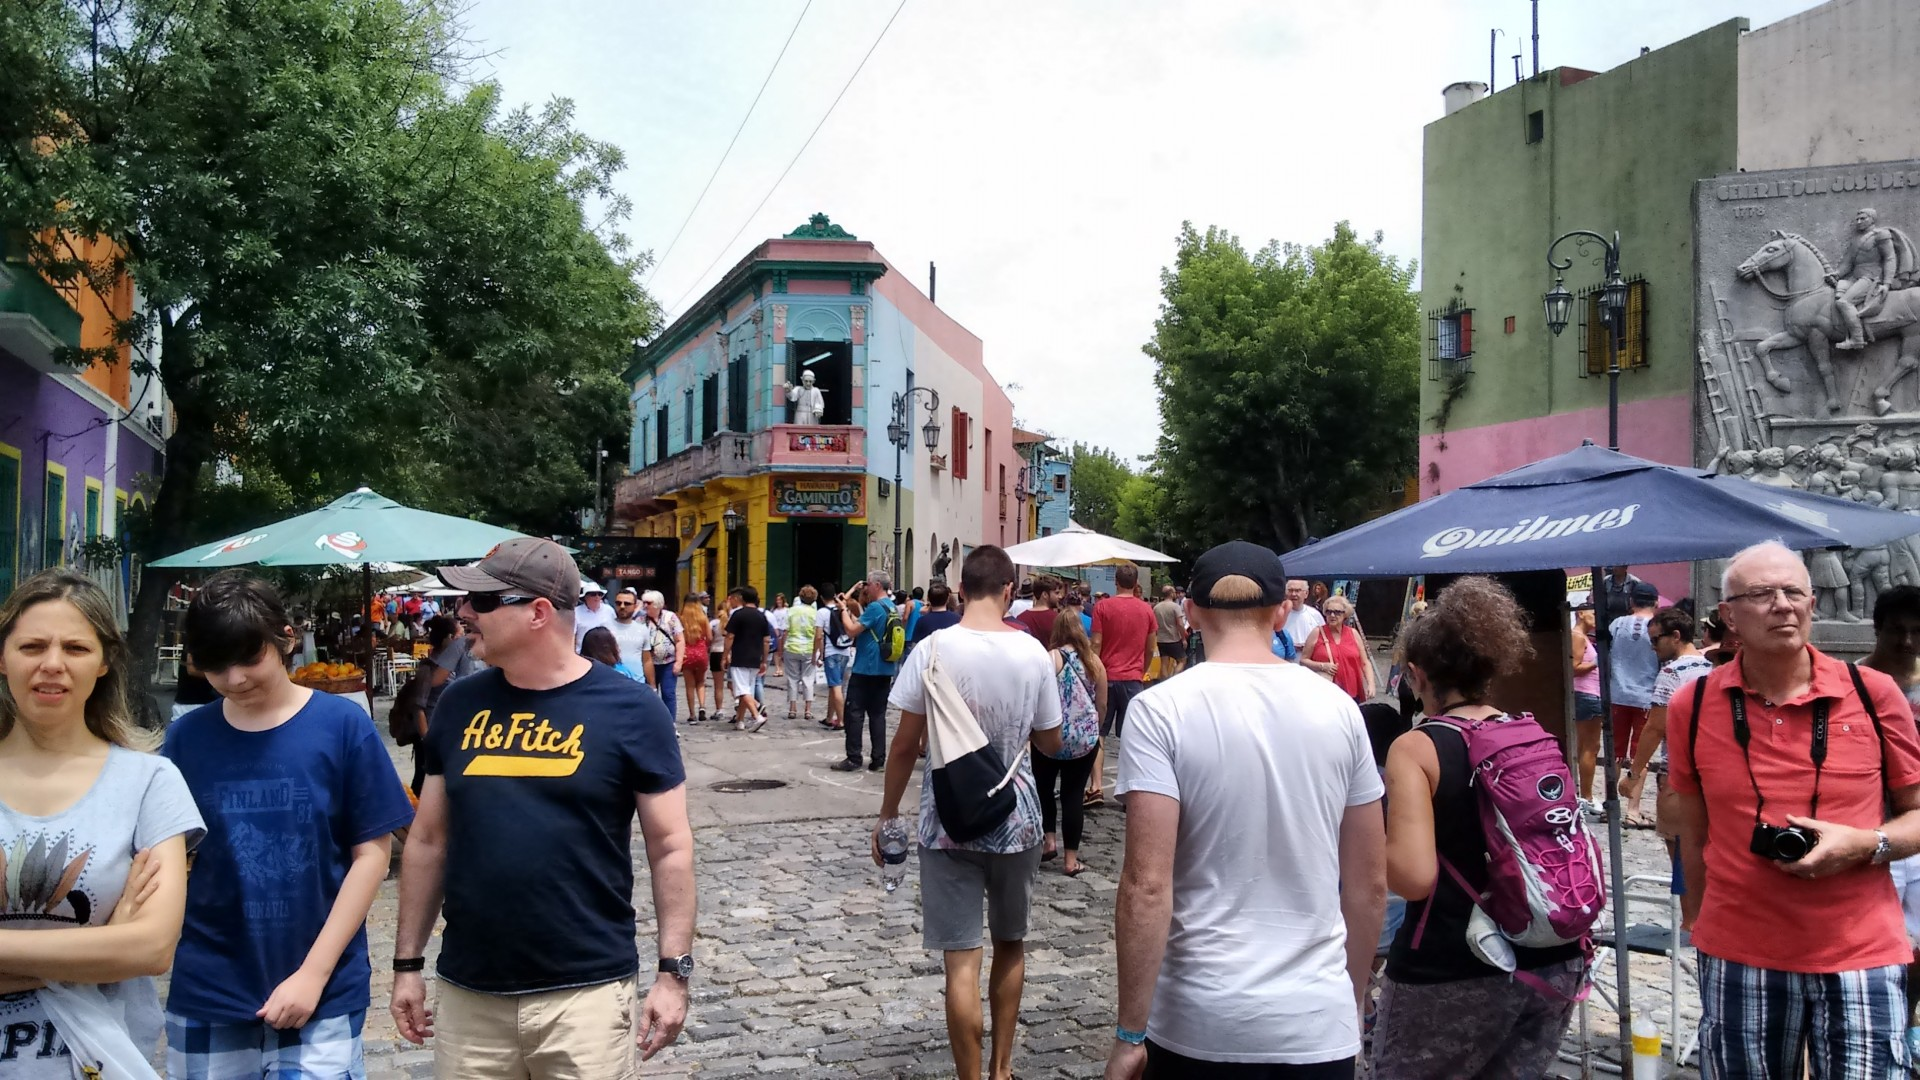 It's La Boca. Plus half of the tourists in Buenos Aires...